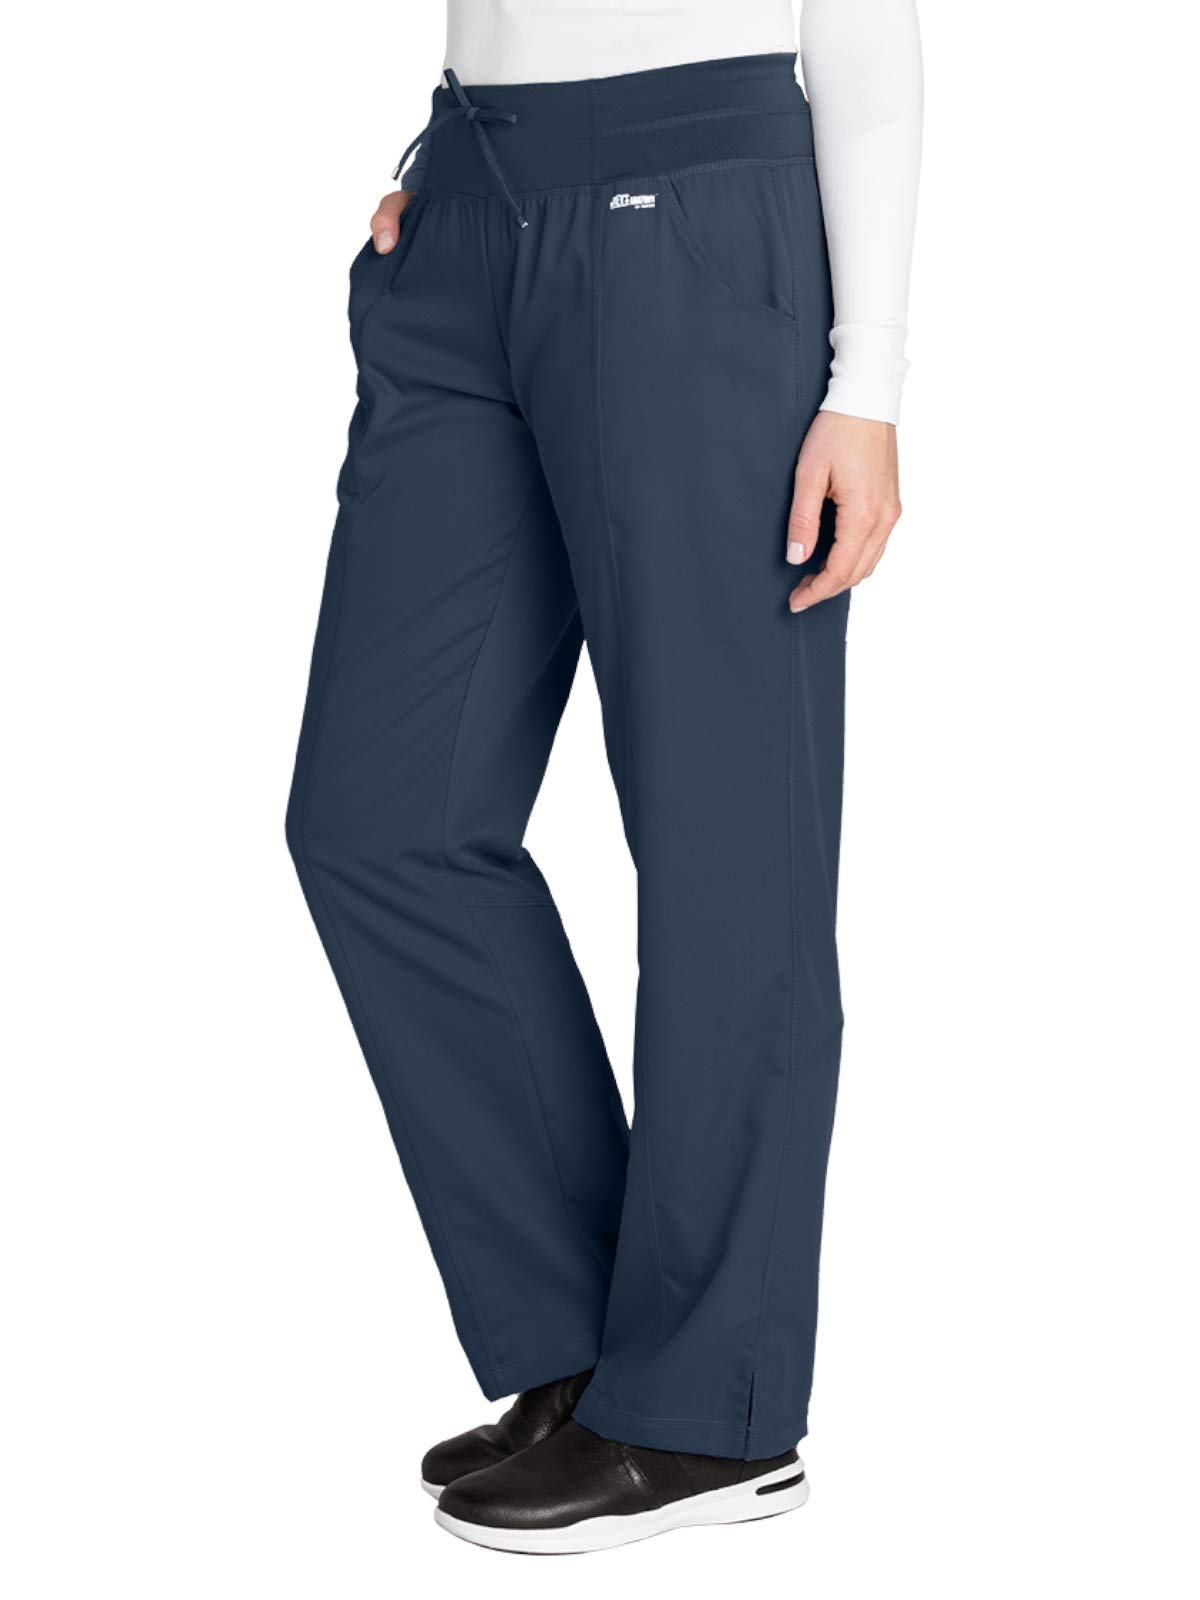 Grey's Anatomy Active 4276 Yoga Pant Steel S by Barco